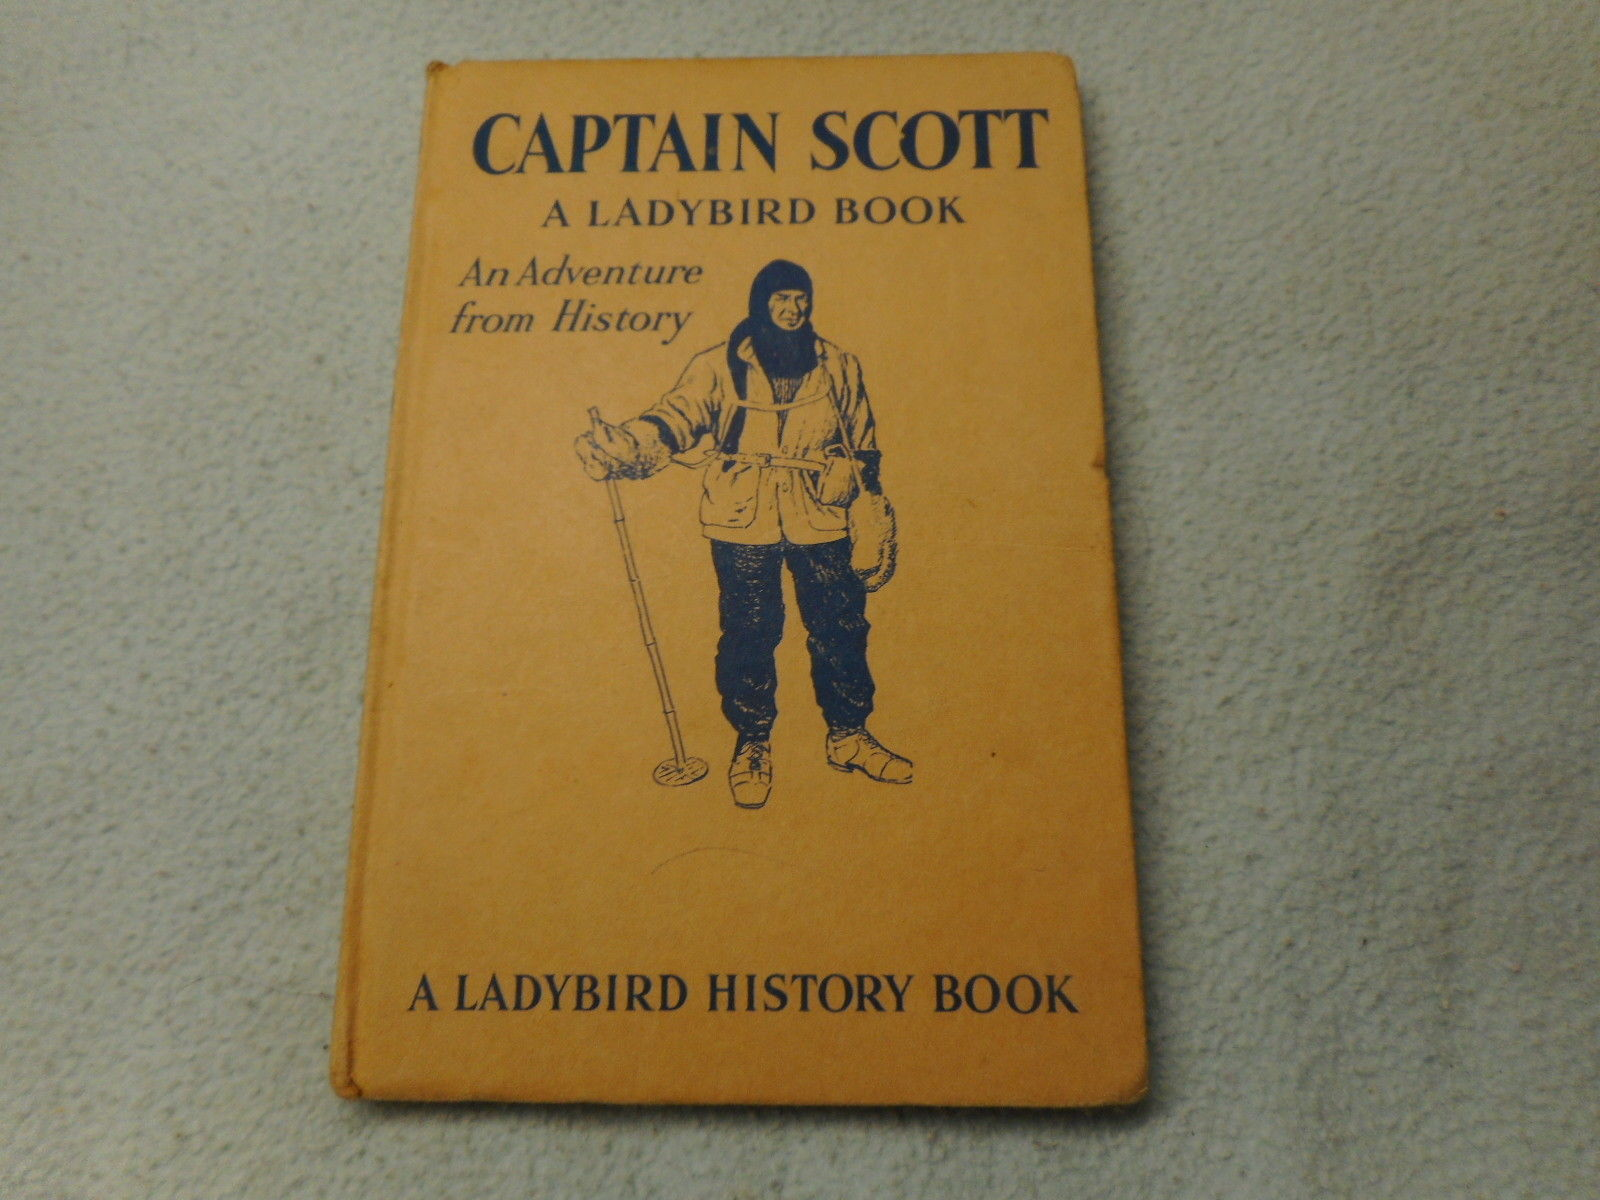 Vintage 1963 Lady Bird Book Captain Scott Series 561